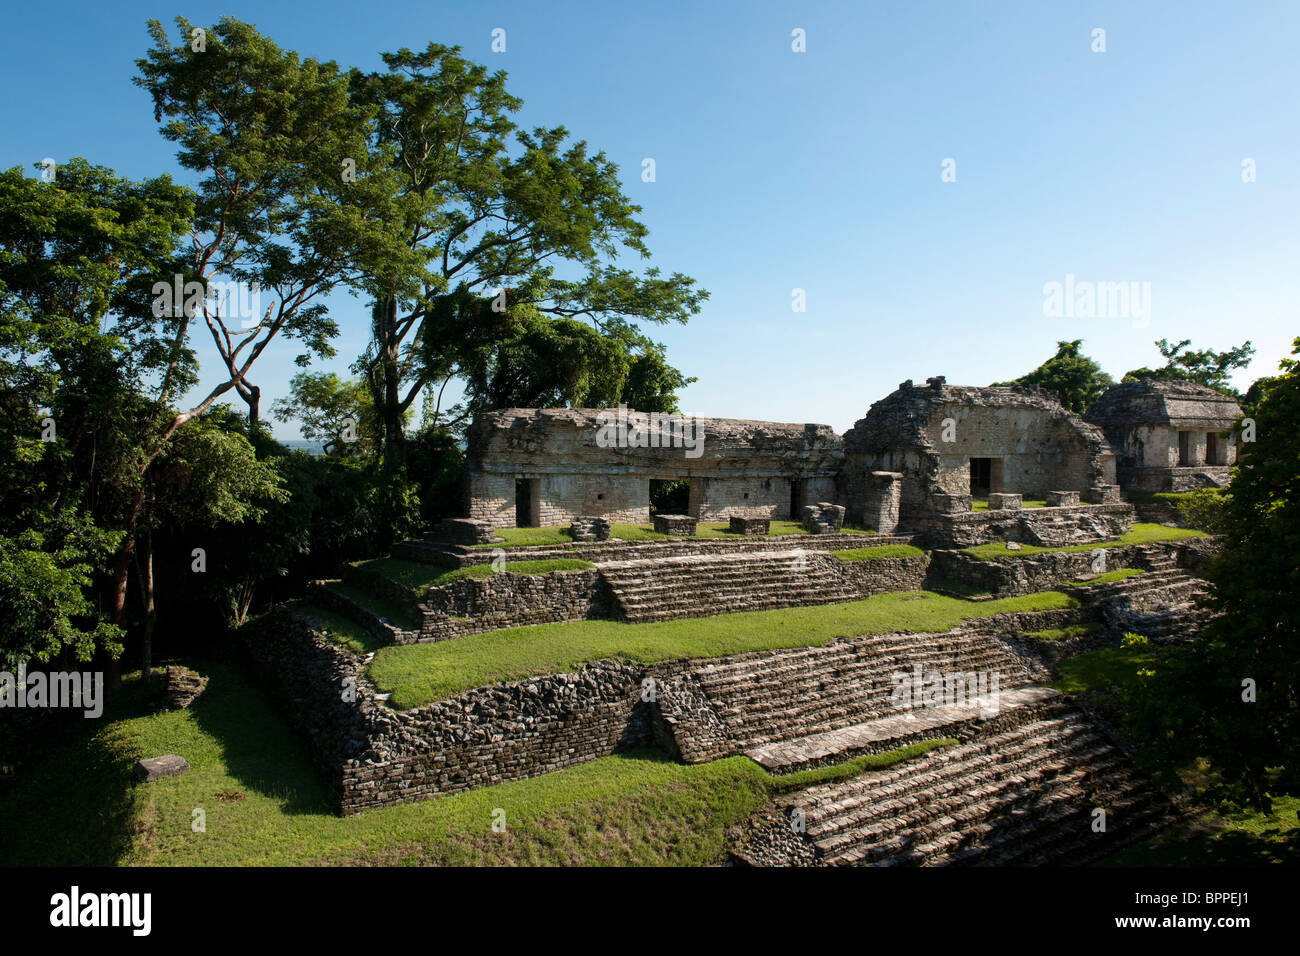 North Group, Maya ruins of Palenque, Mexico - Stock Image